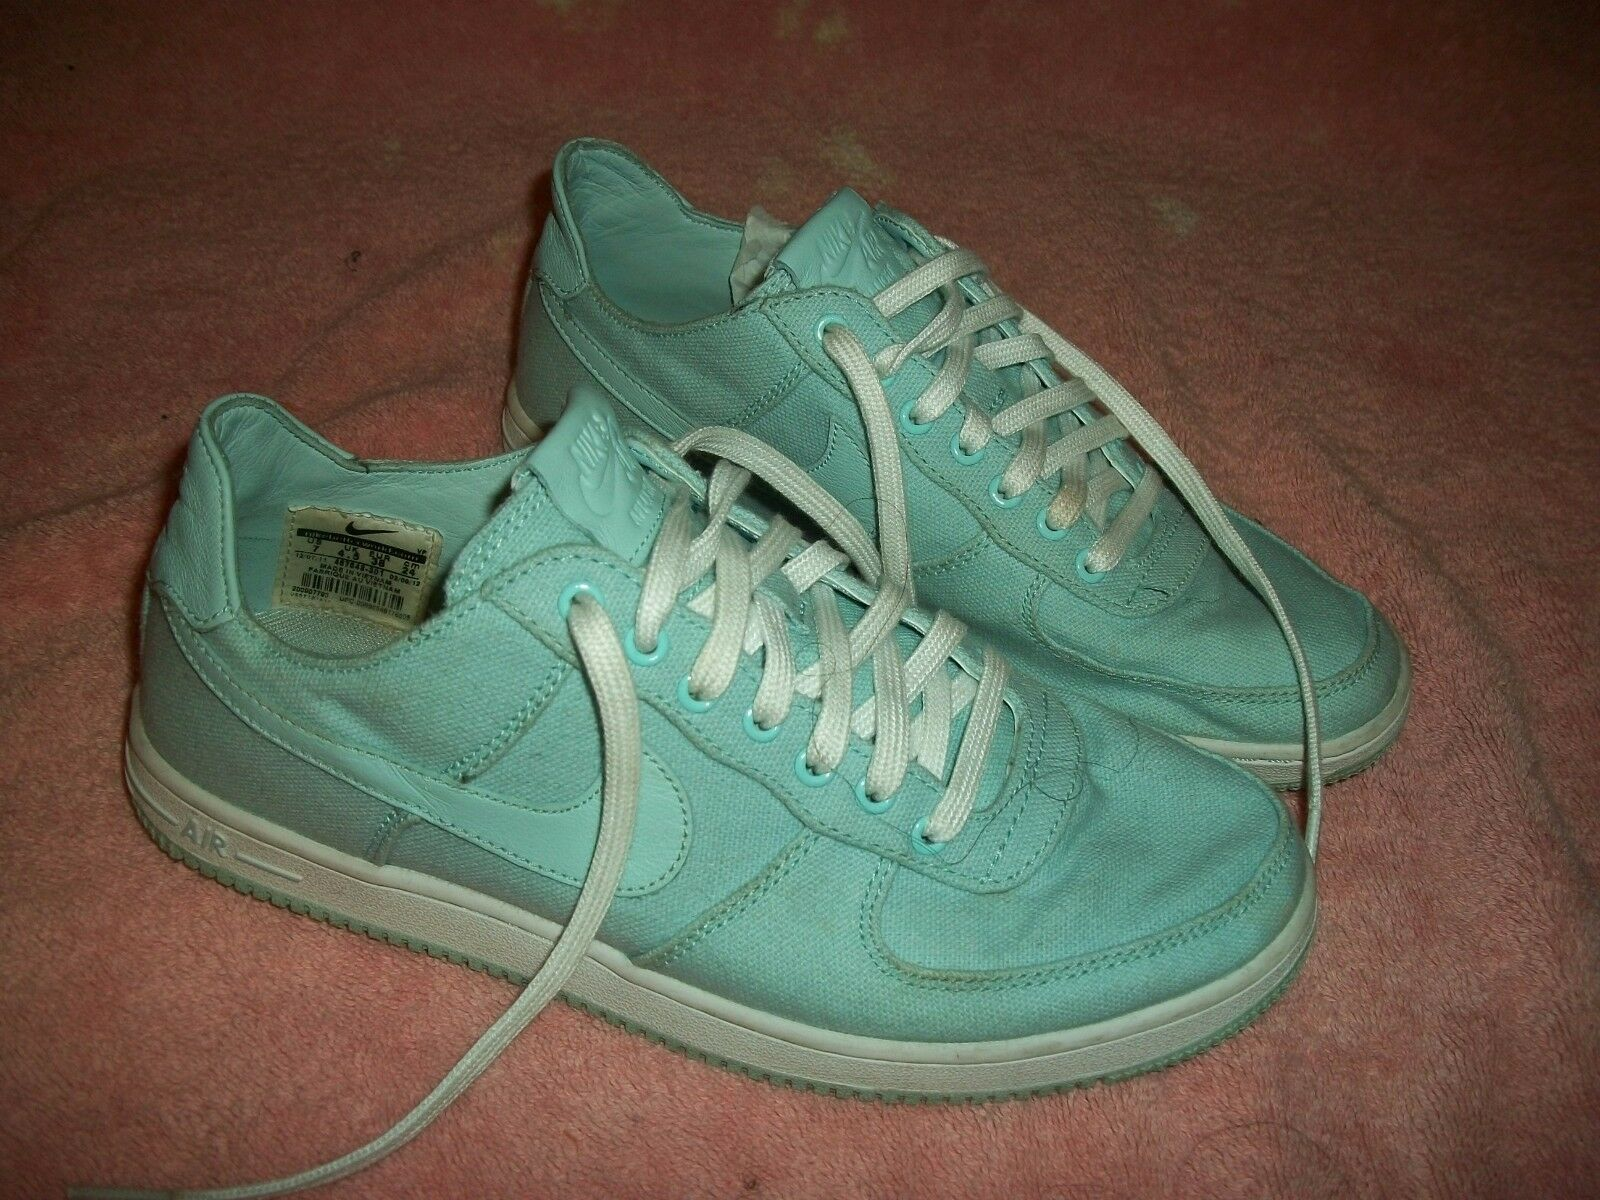 WOMENS NIKE AIR AF1 LIGHT SHOES SIZE 4.5 IN GOOD COND Seasonal price cuts, discount benefits Wild casual shoes